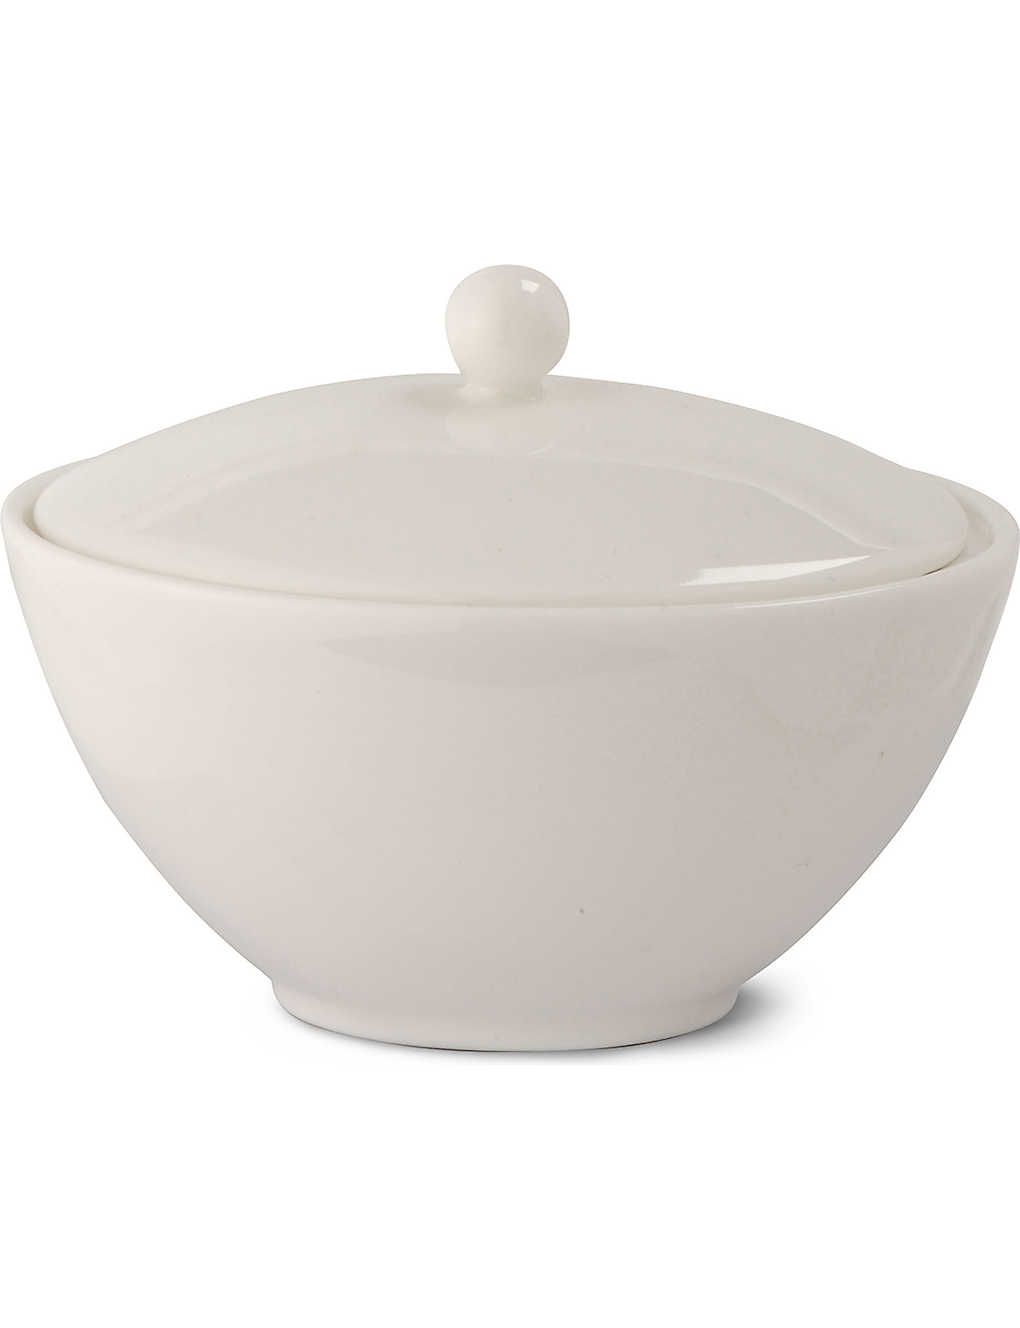 JASPER CONRAN @ WEDGWOOD: White sugar box